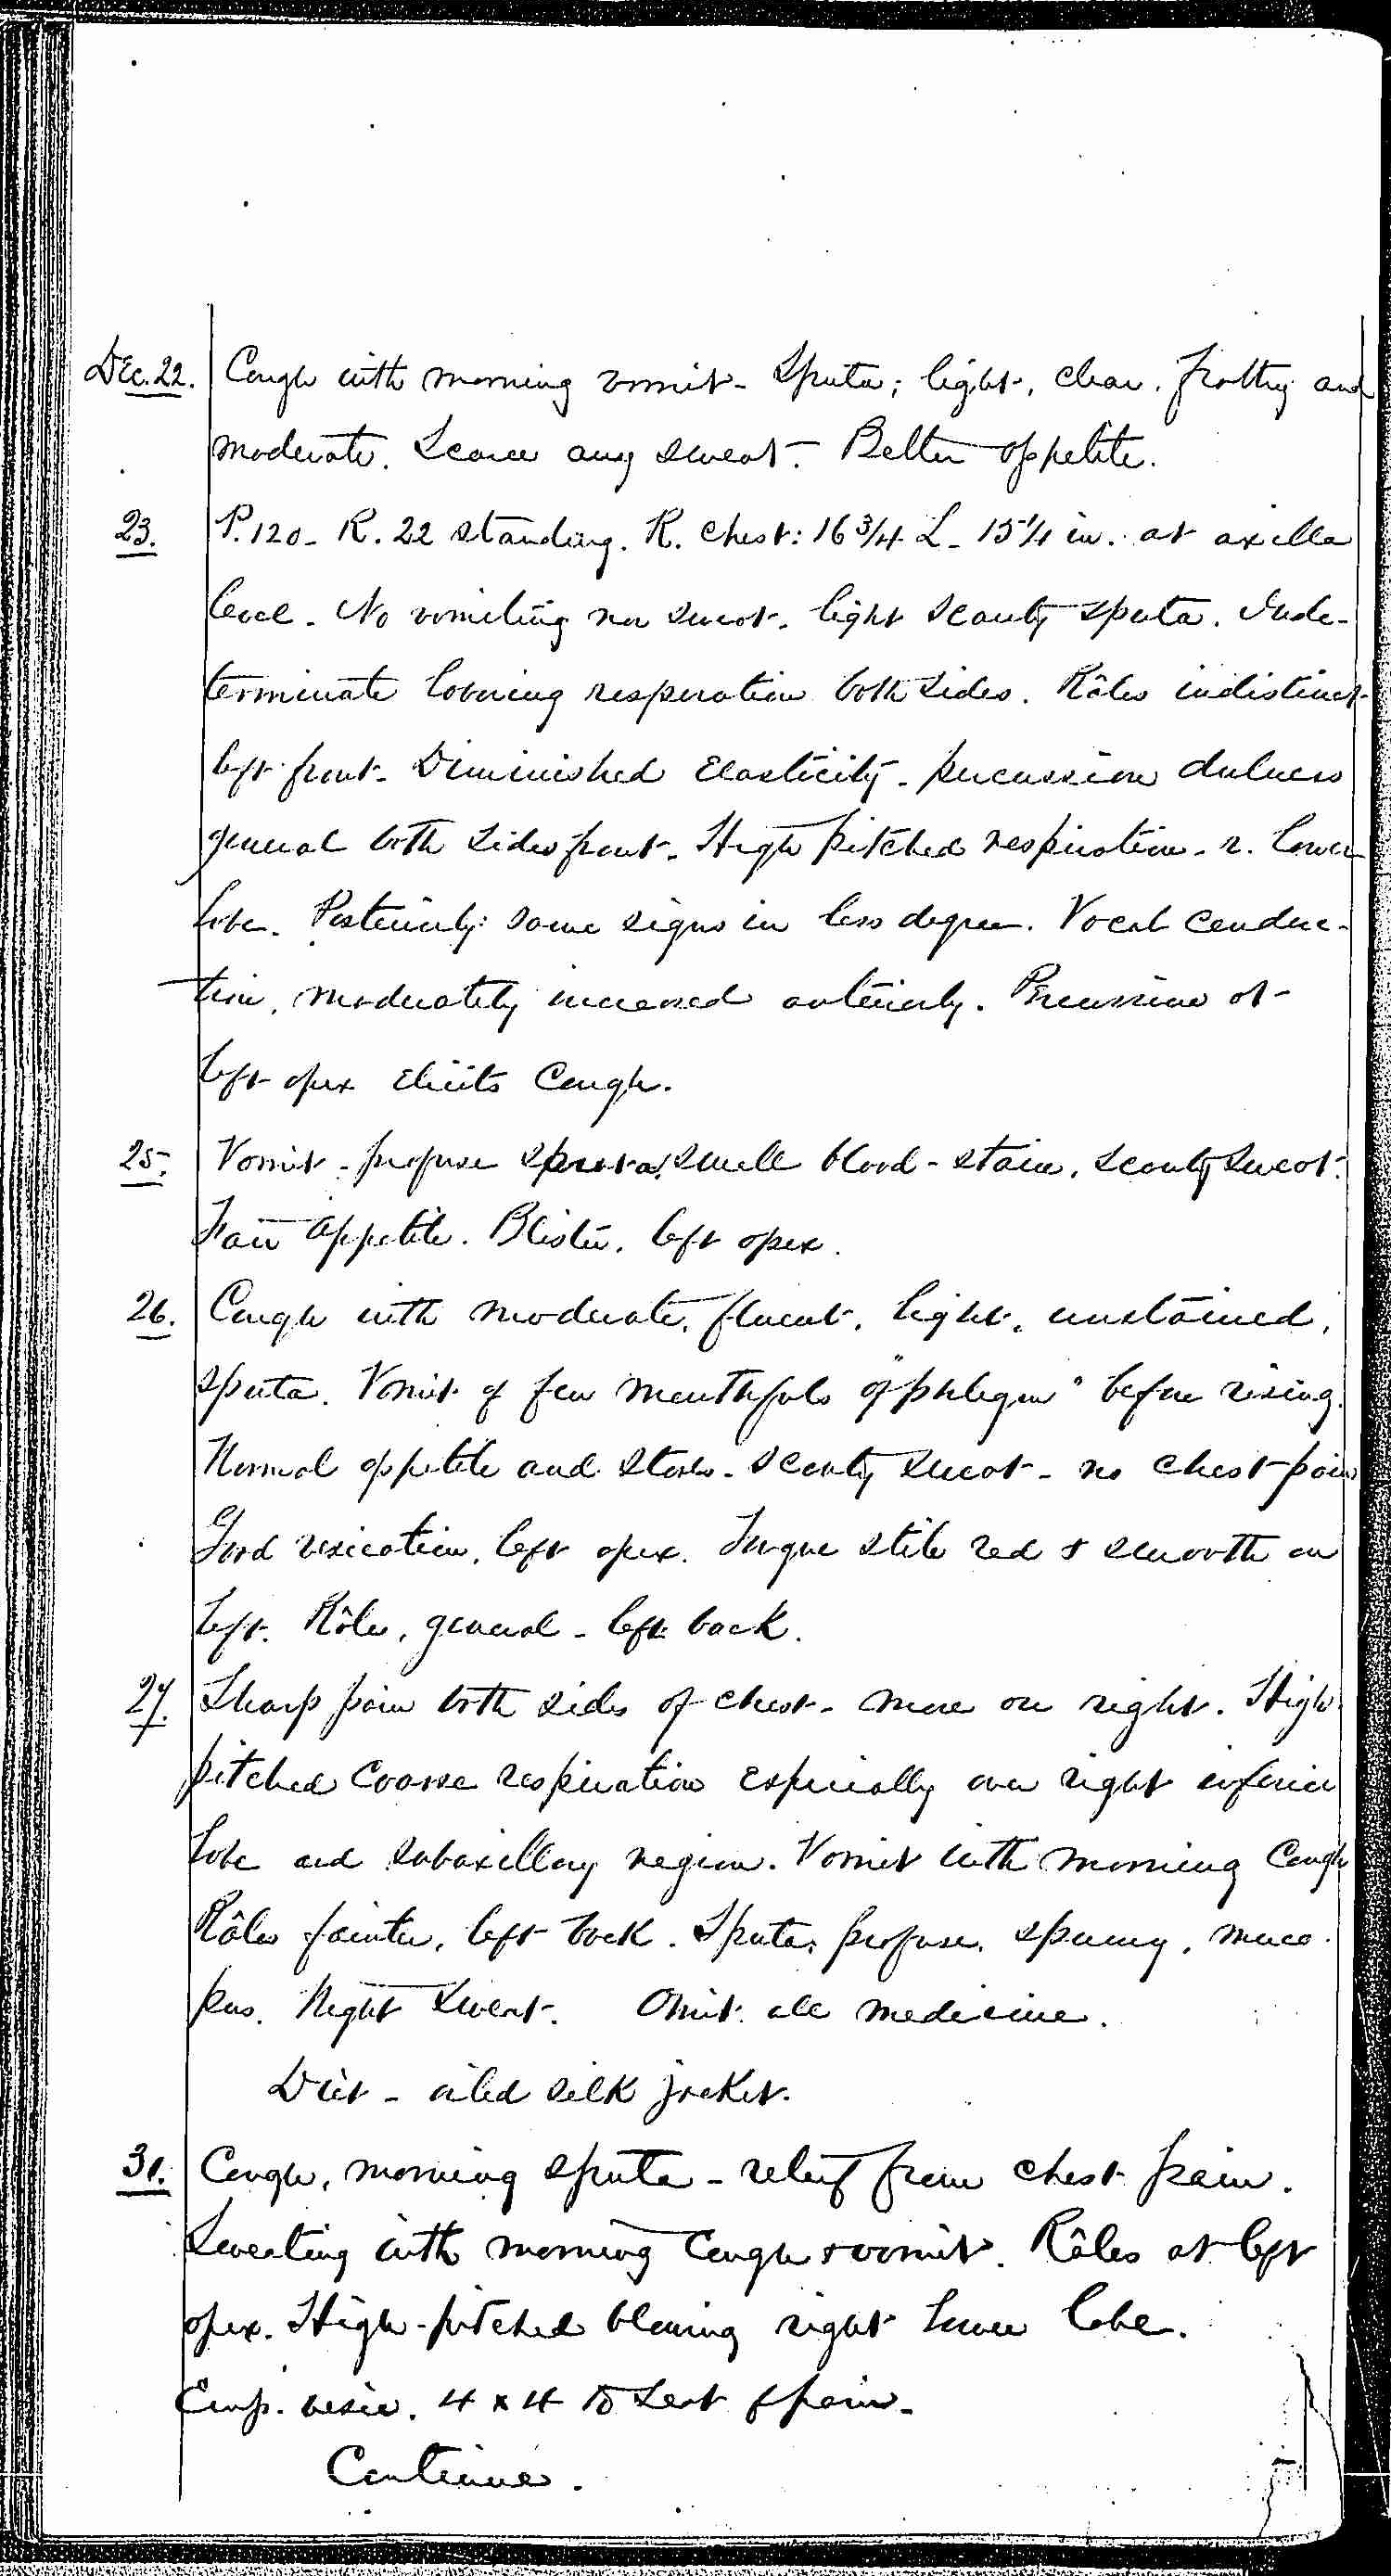 Entry for Hugh Riley (page 20 of 31) in the log Hospital Tickets and Case Papers - Naval Hospital - Washington, D.C. - 1868-69